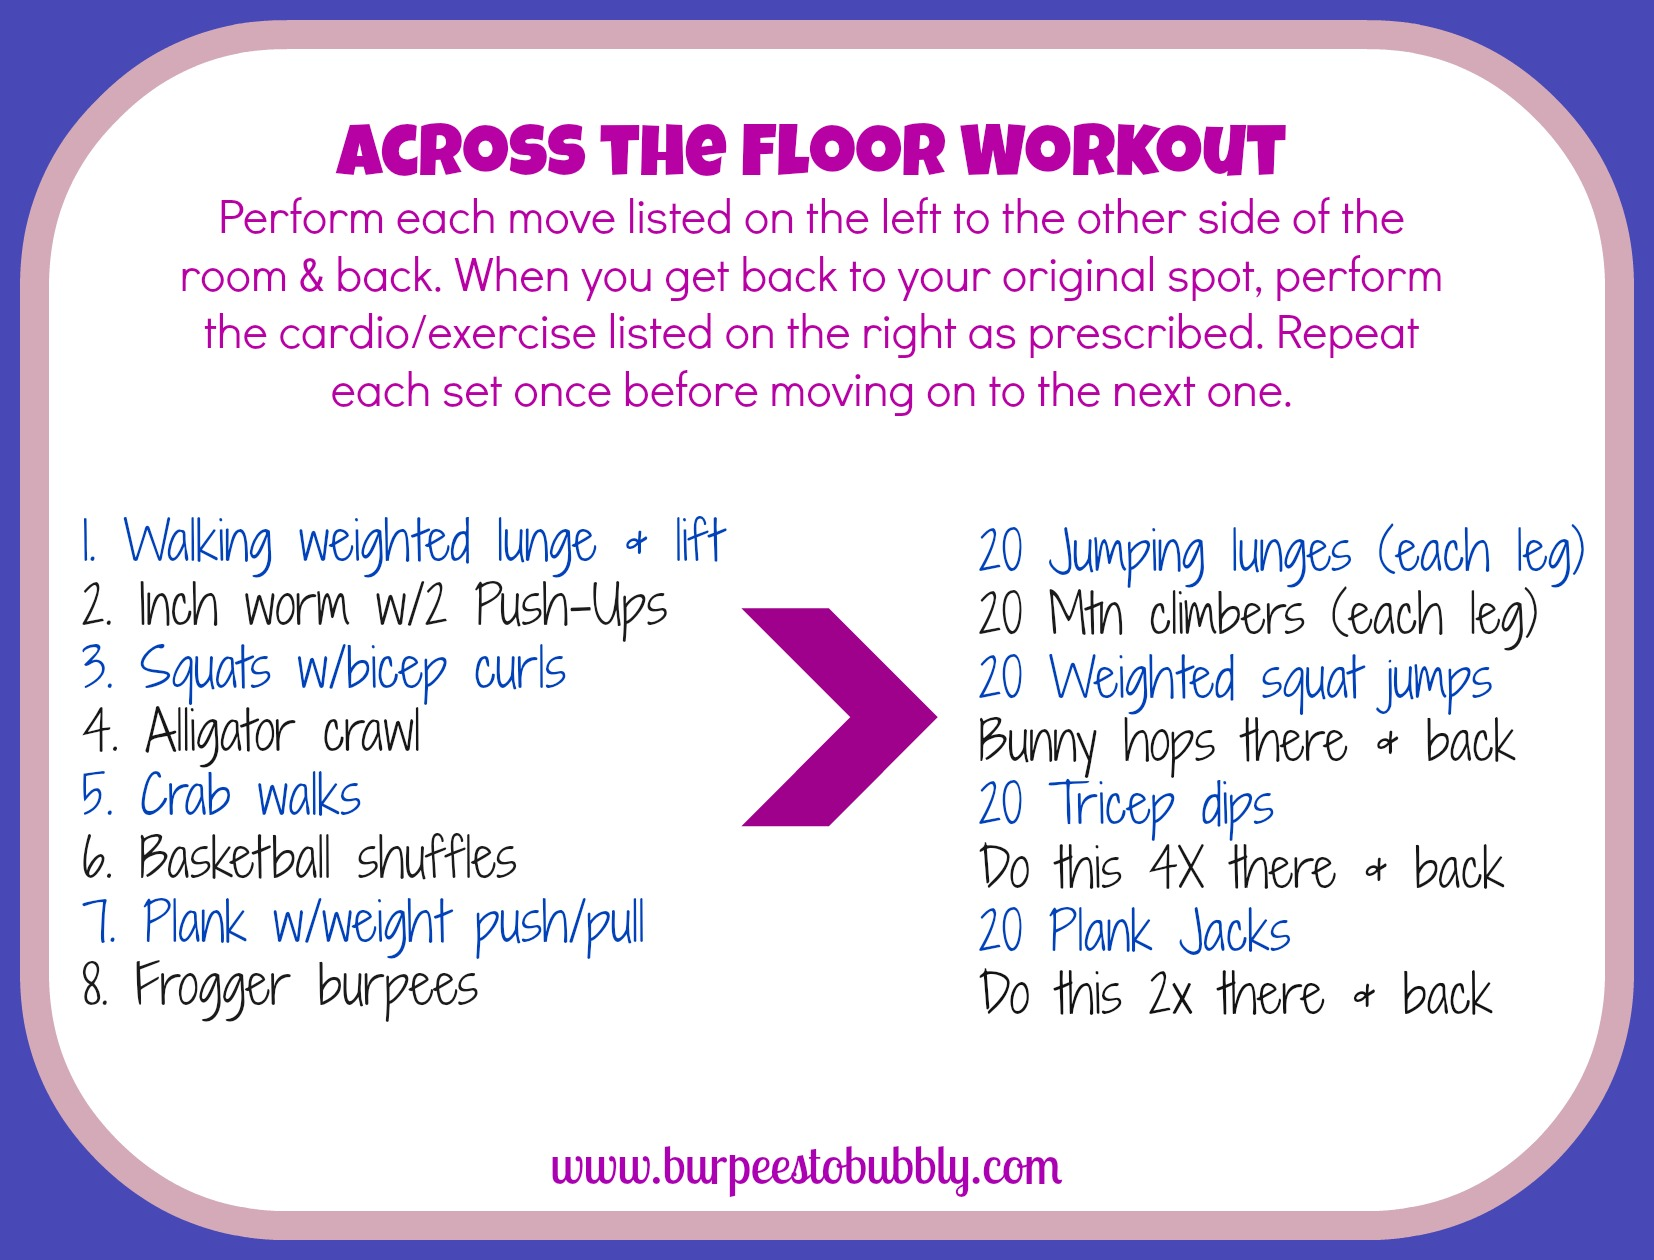 Wednesday workout across the floor workout burpees to for Floor workout